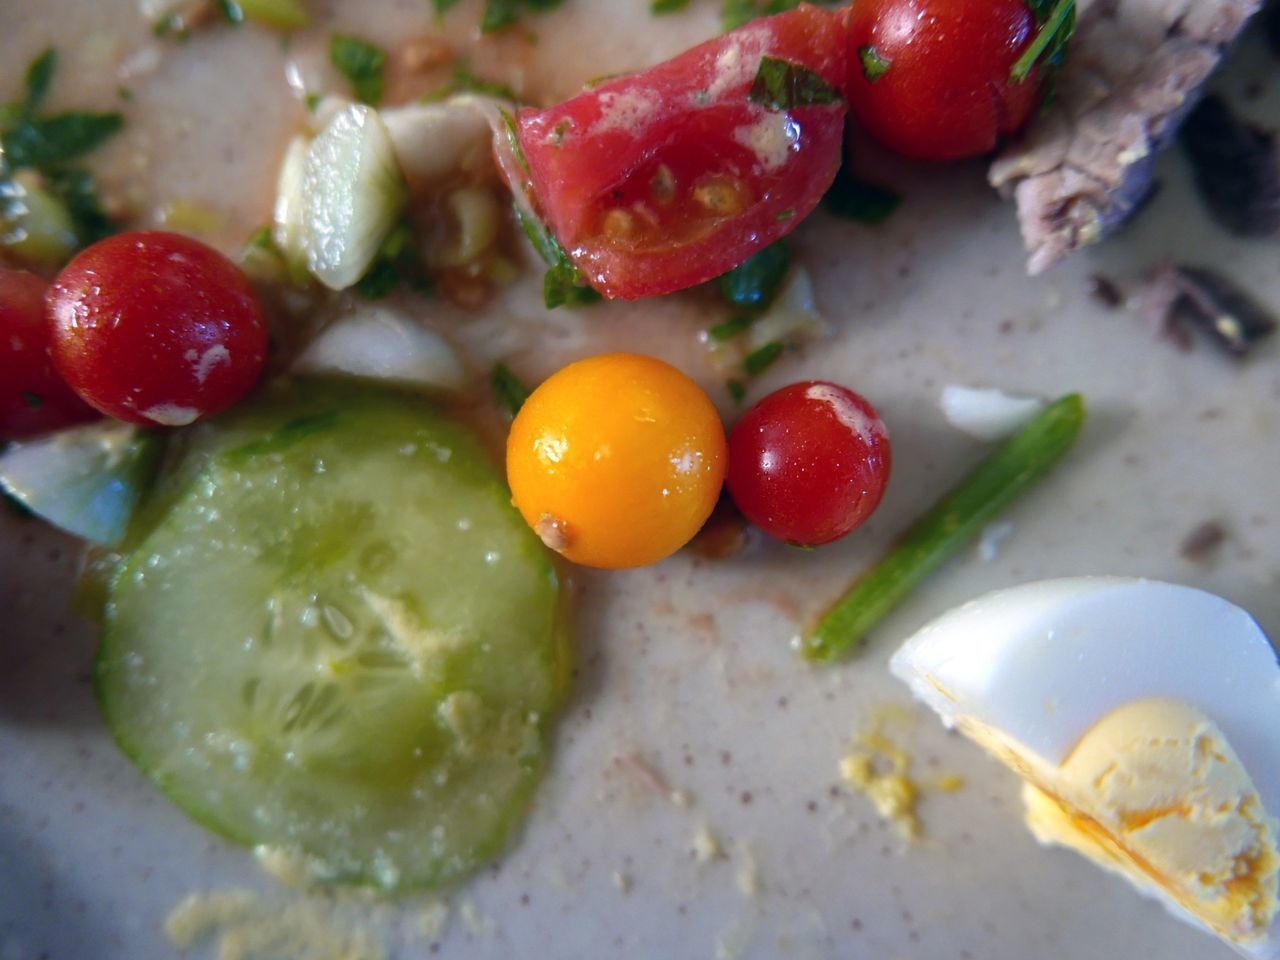 food and drink, freshness, food, no people, close-up, indoors, healthy eating, tomato, ready-to-eat, day